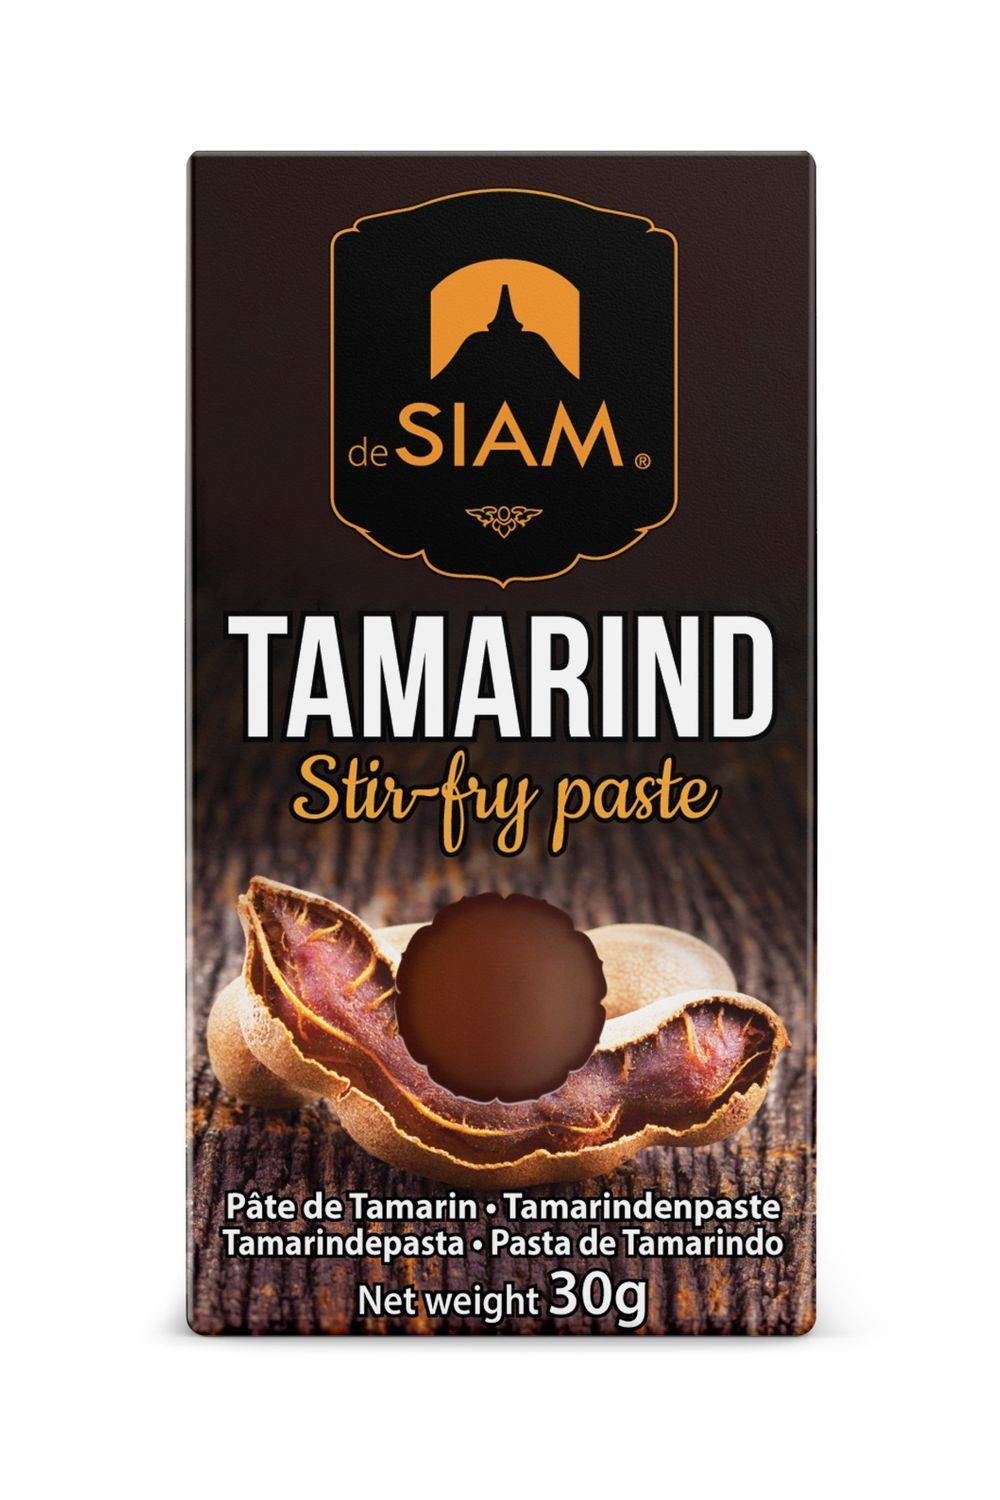 Tamarind Stir-fry paste